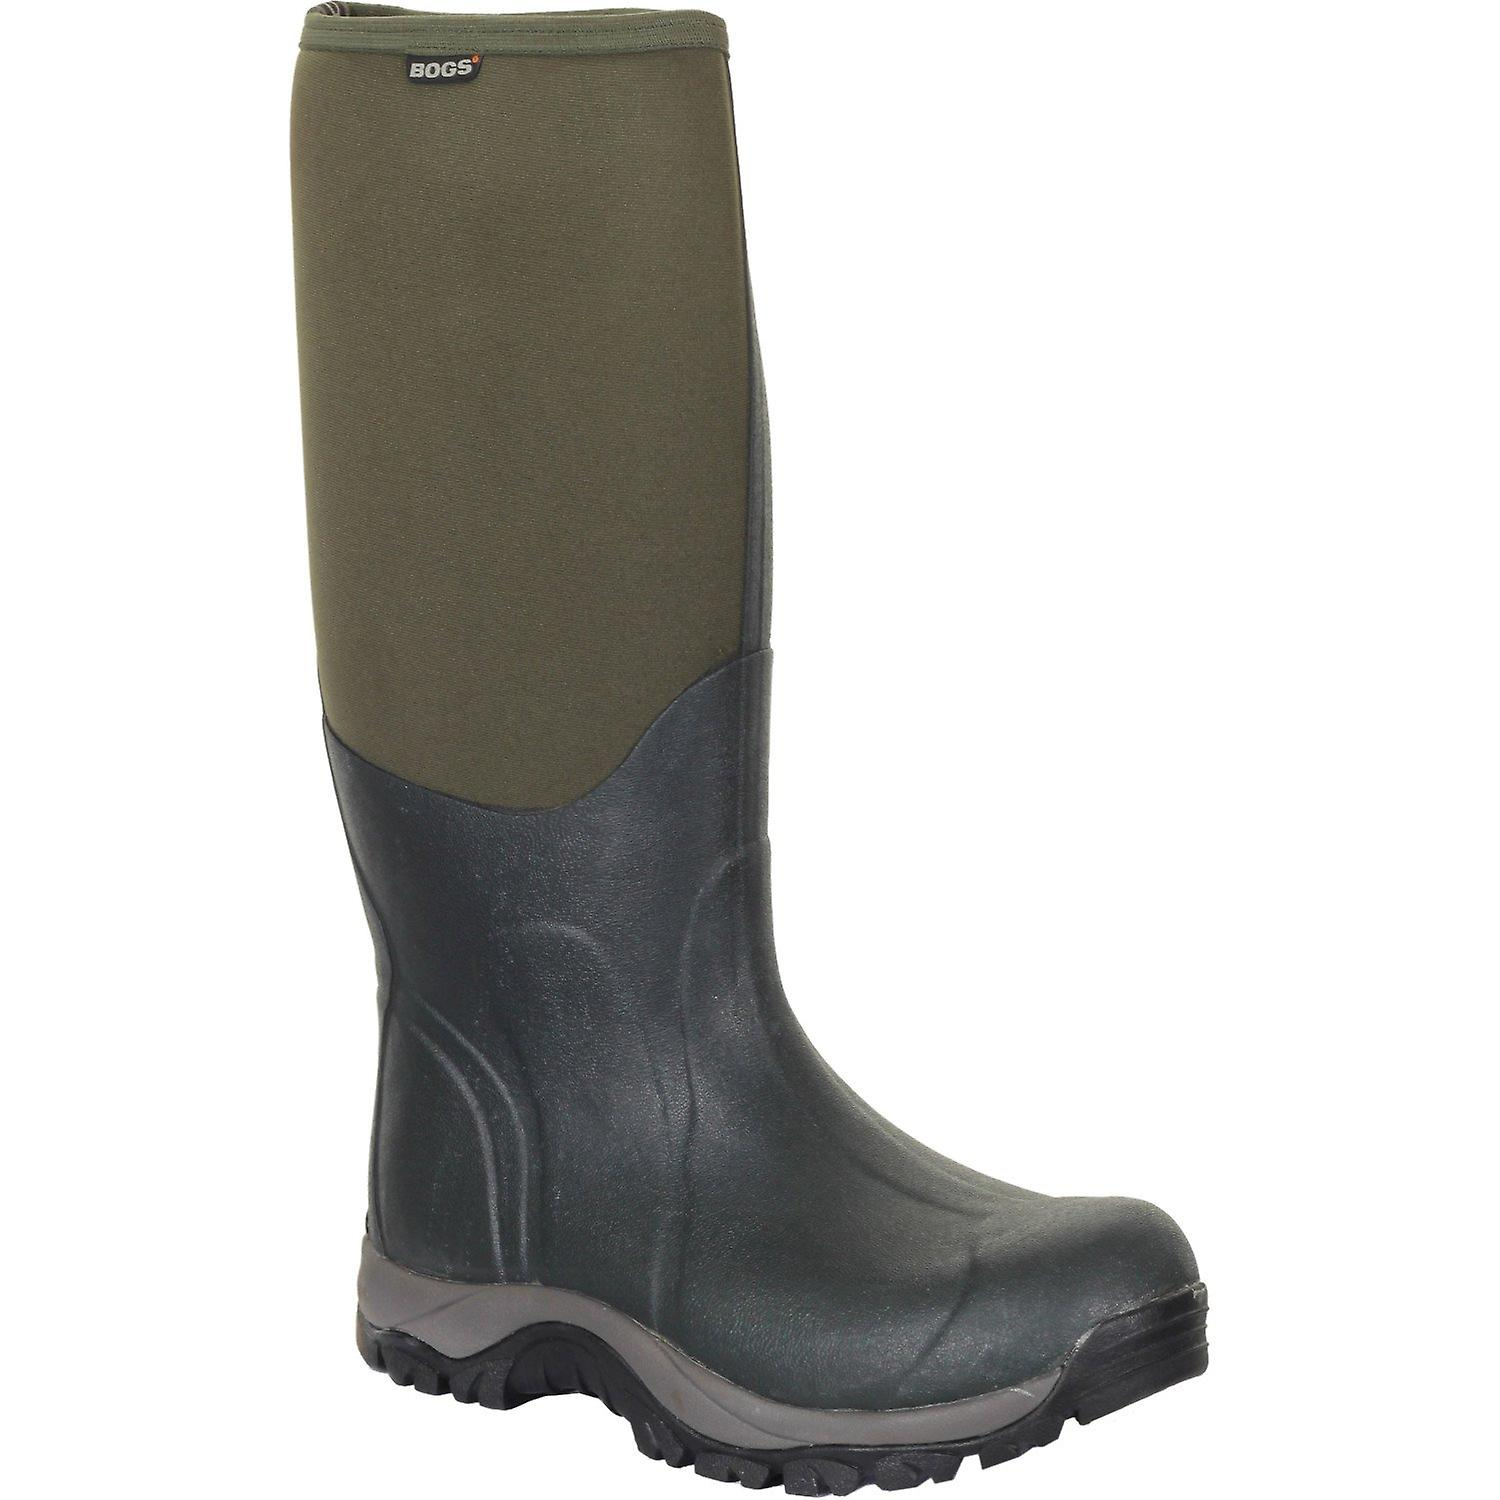 Bogs Blaze High Wellies